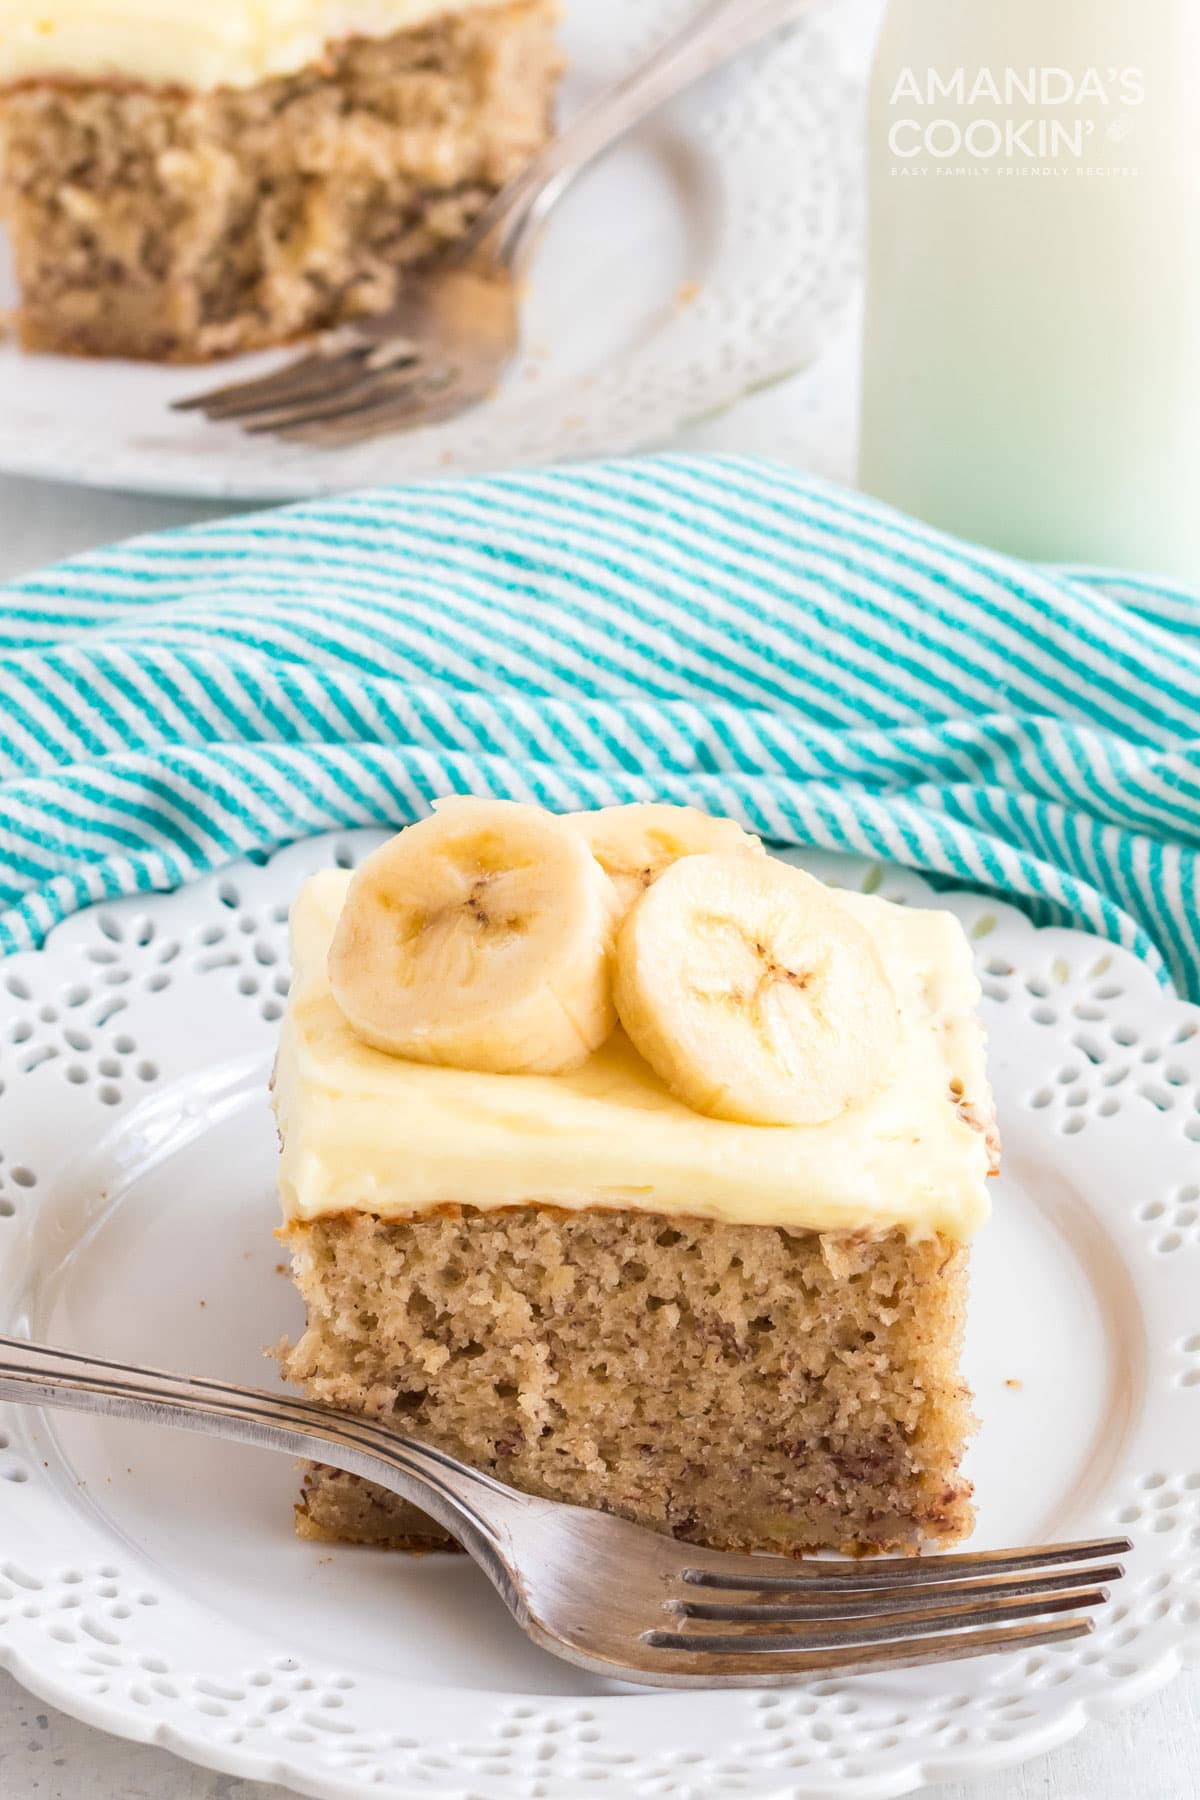 slice of banana cake on white plate